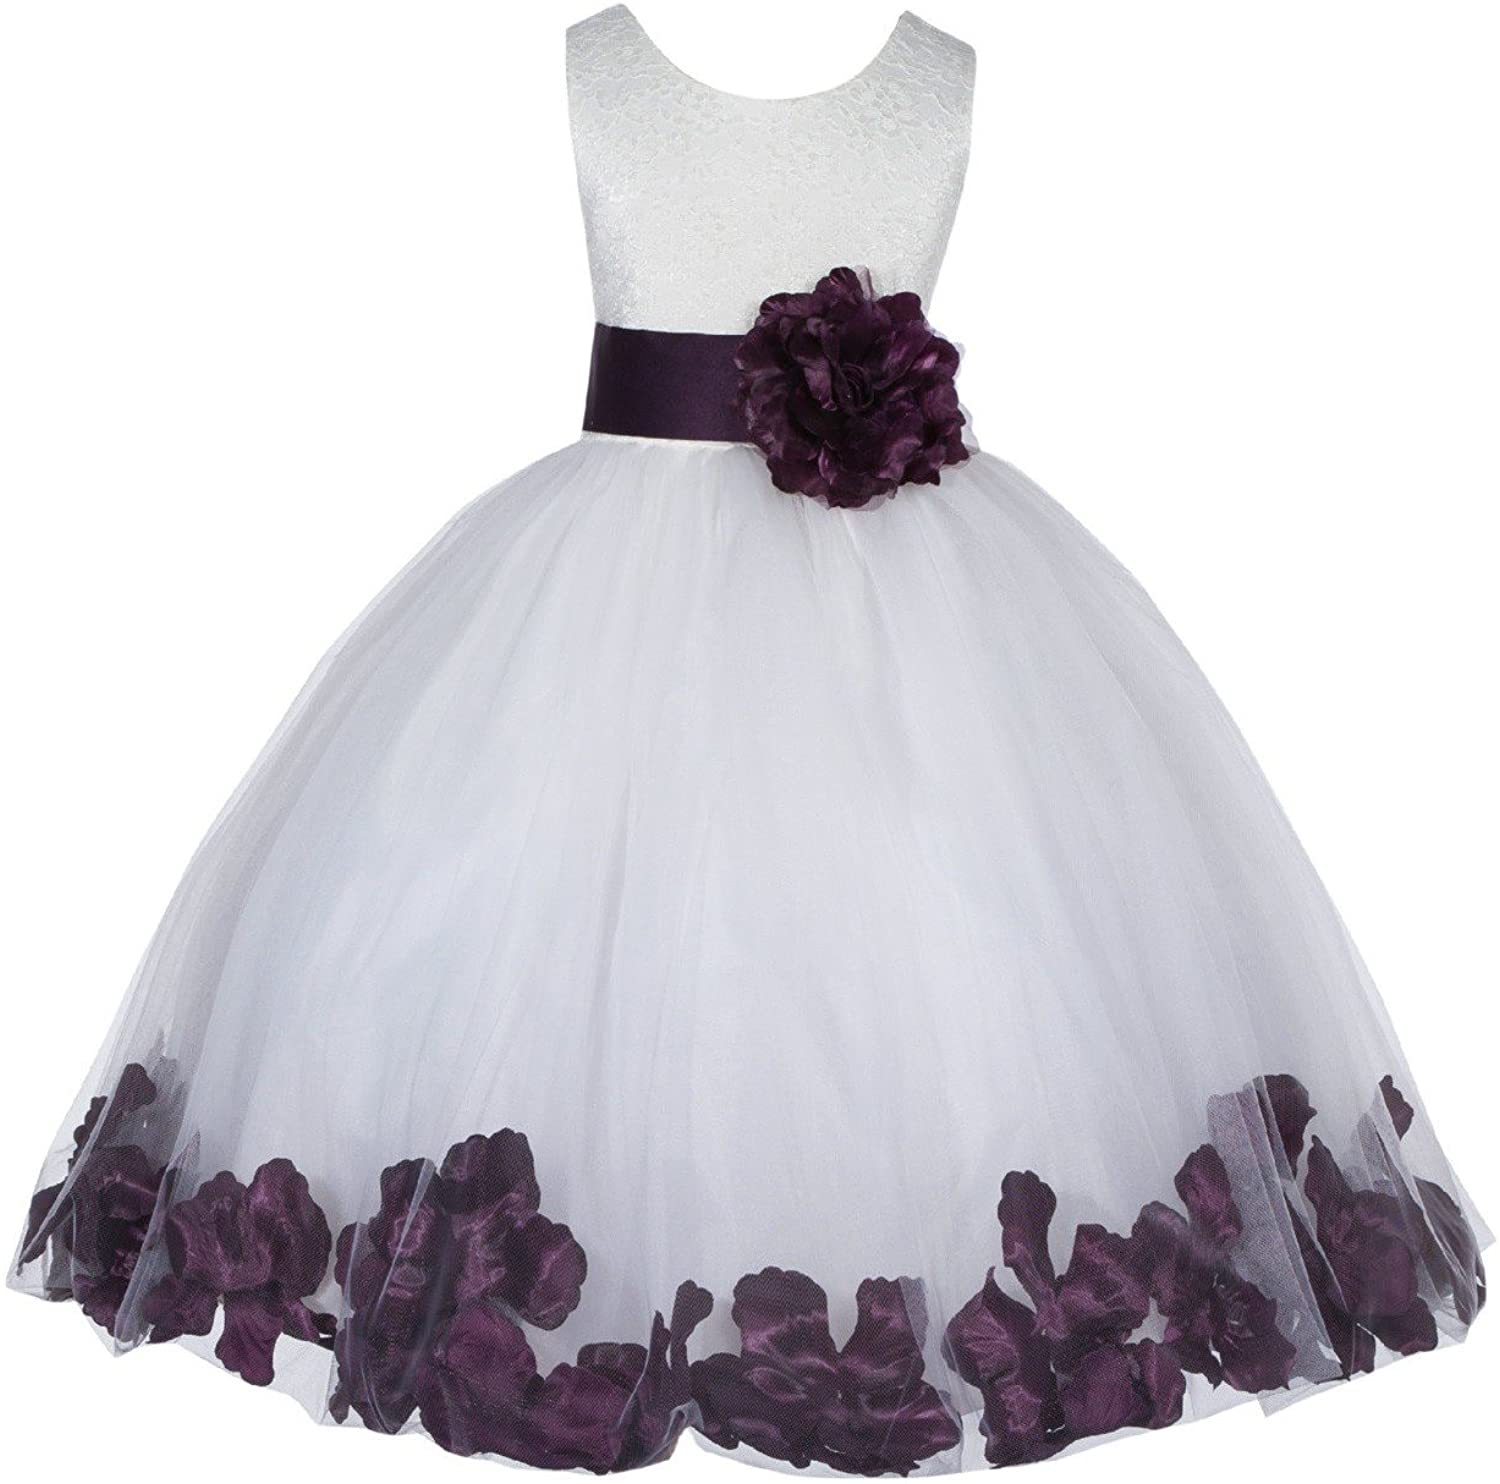 Ivory Lace Top Tulle Floral Petals Flower Girl Dress Christening Dresses 165S